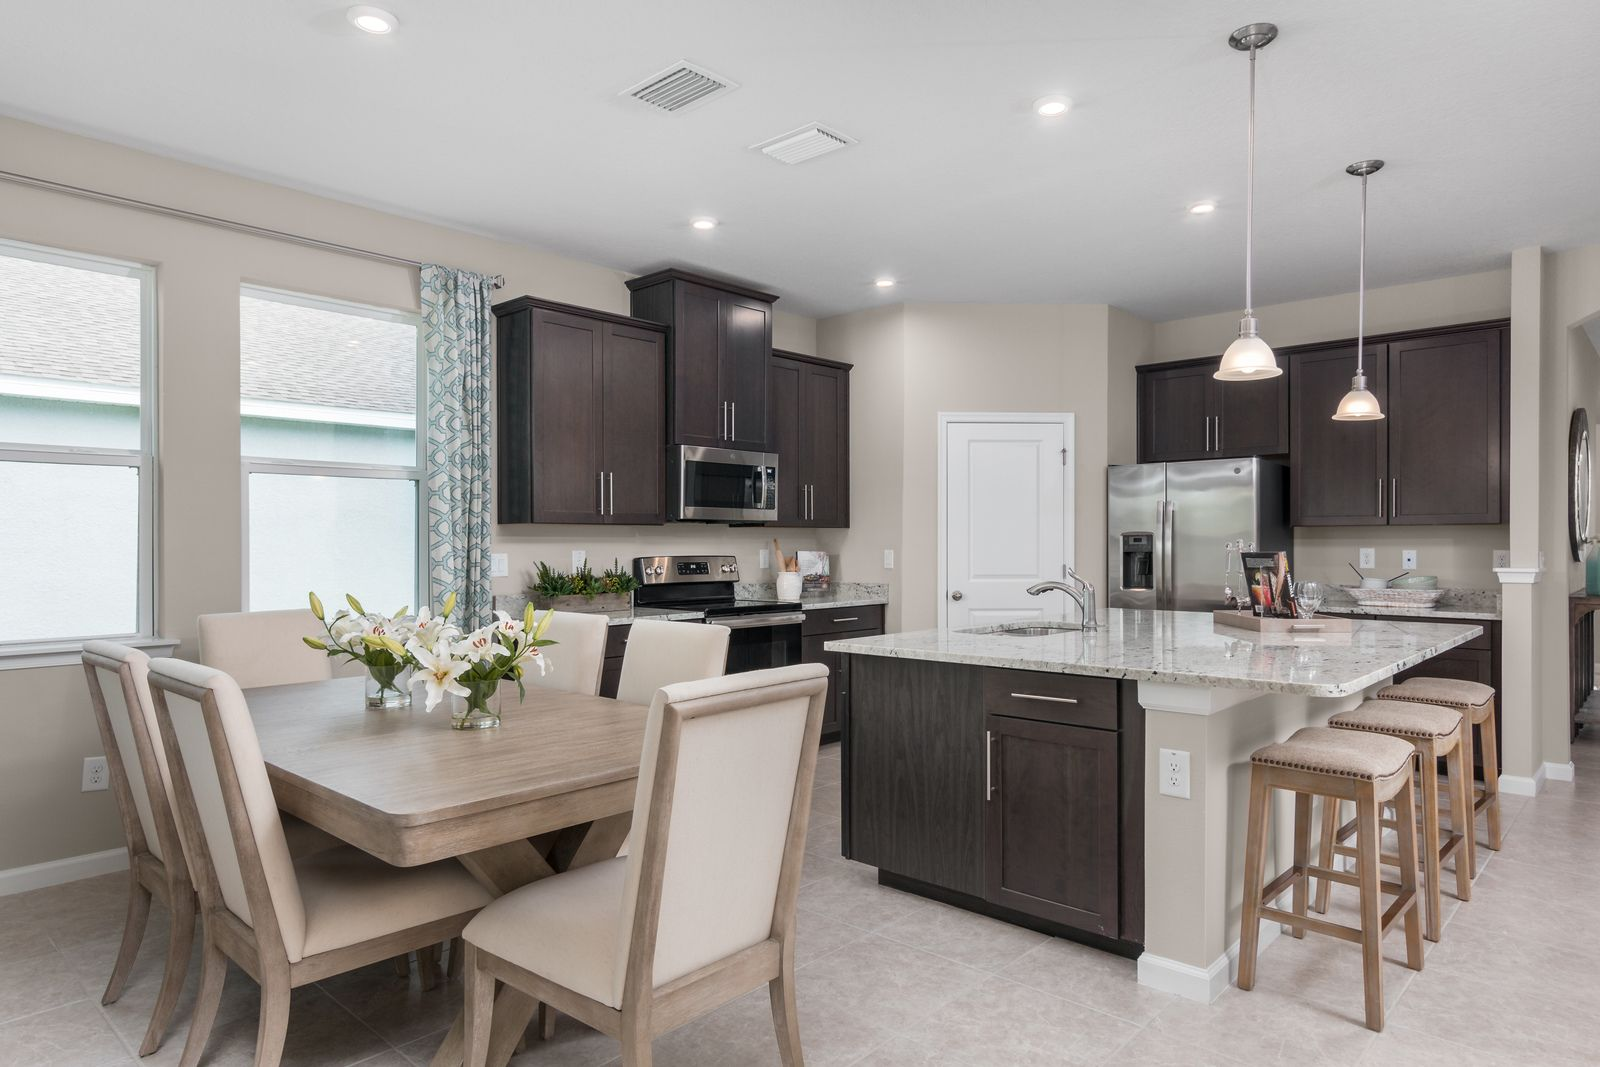 Kitchen featured in the Seagate By Ryan Homes in Tampa-St. Petersburg, FL